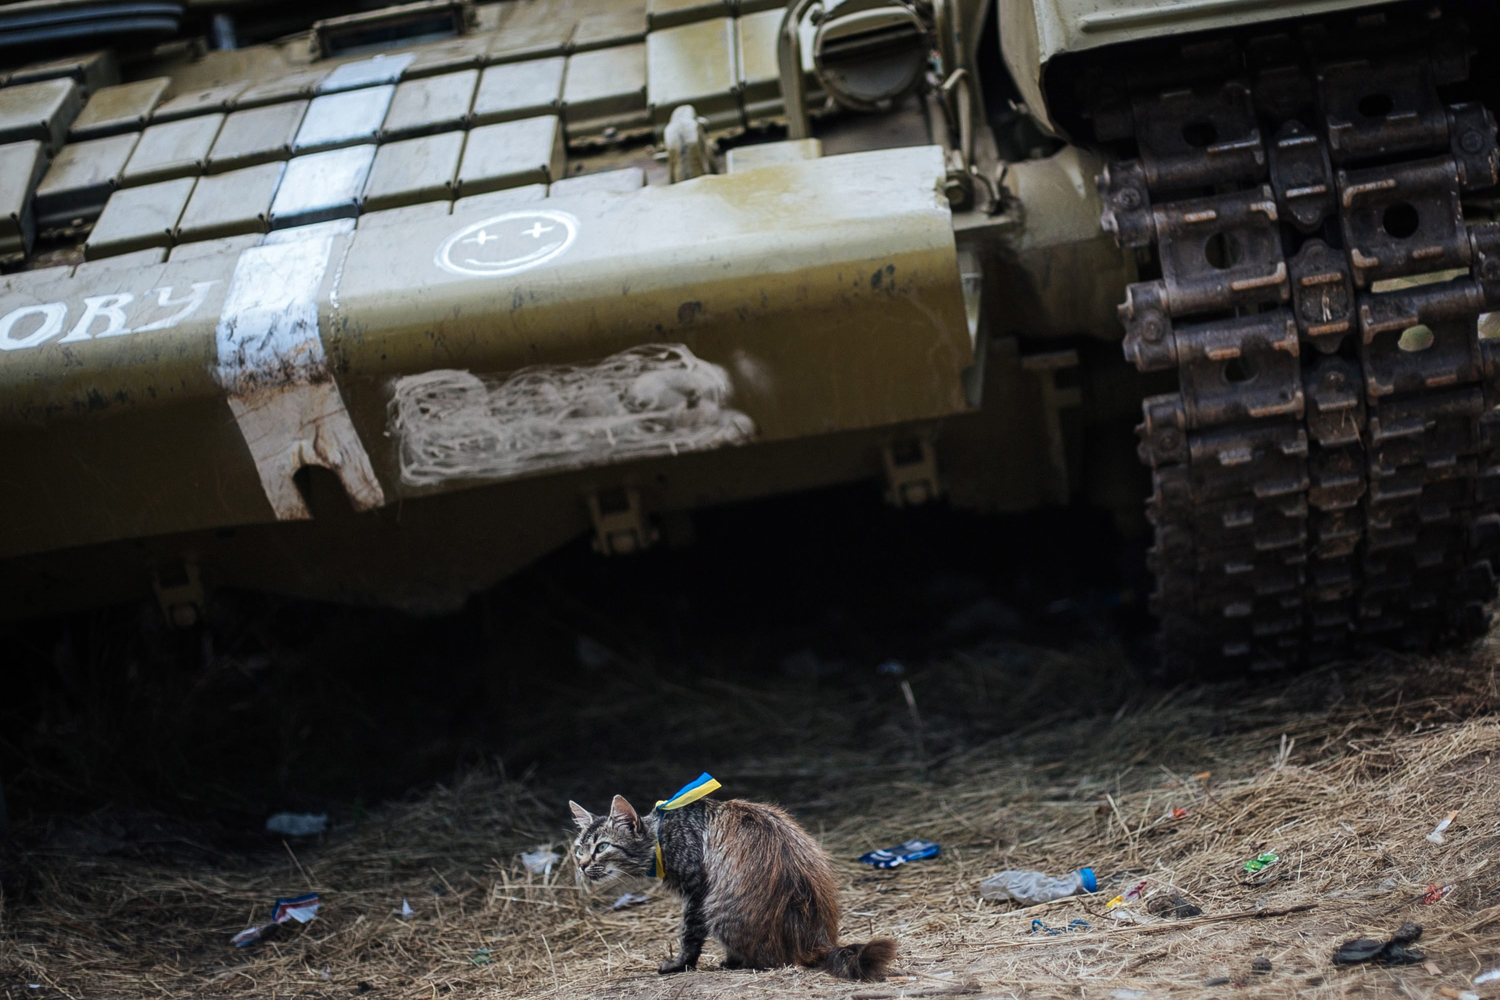 Aug. 22, 2014. A cat wearing a ribbon with the Ukrainian national flag sits near a tank at a Ukrainian checkpoint in the town of Avdeevka, near Donetsk, Ukraine.